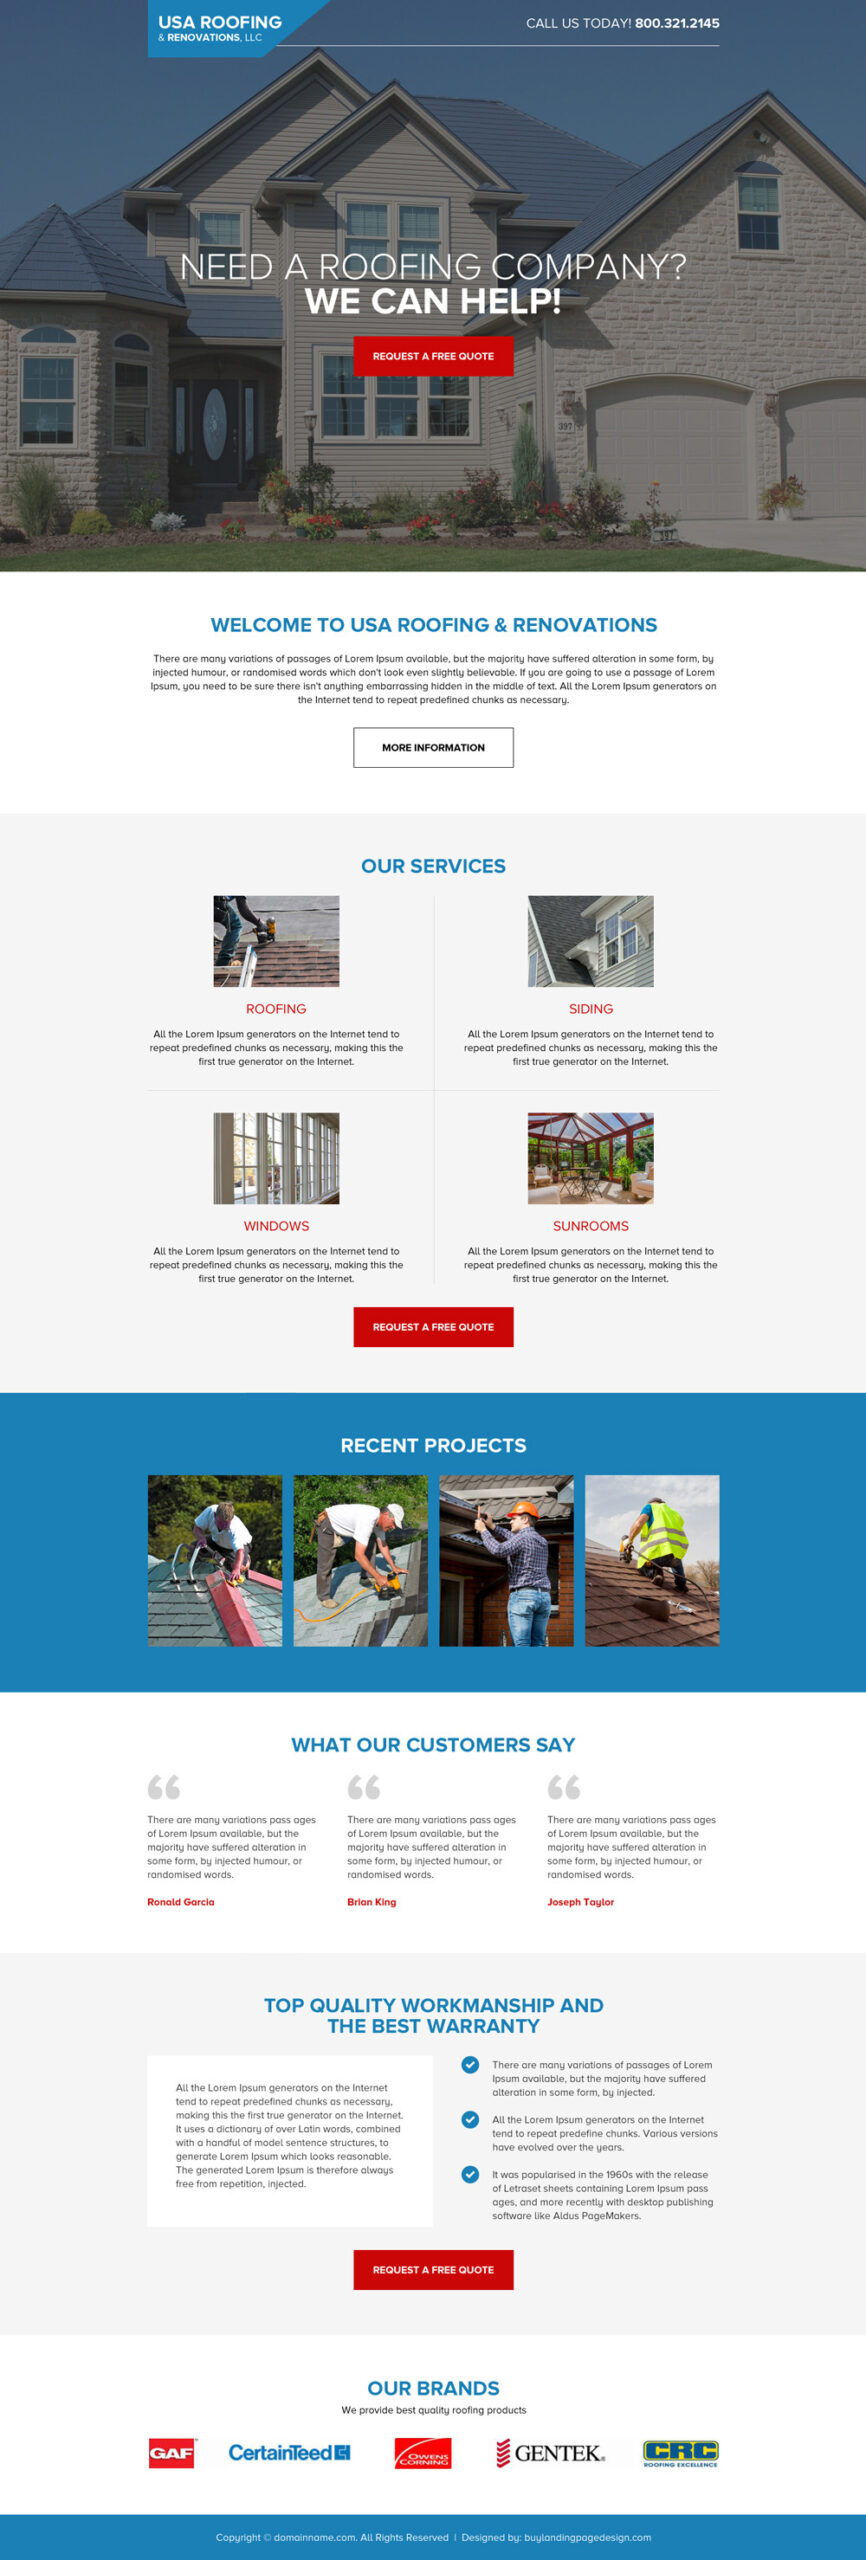 USA roofing and renovation company landing page